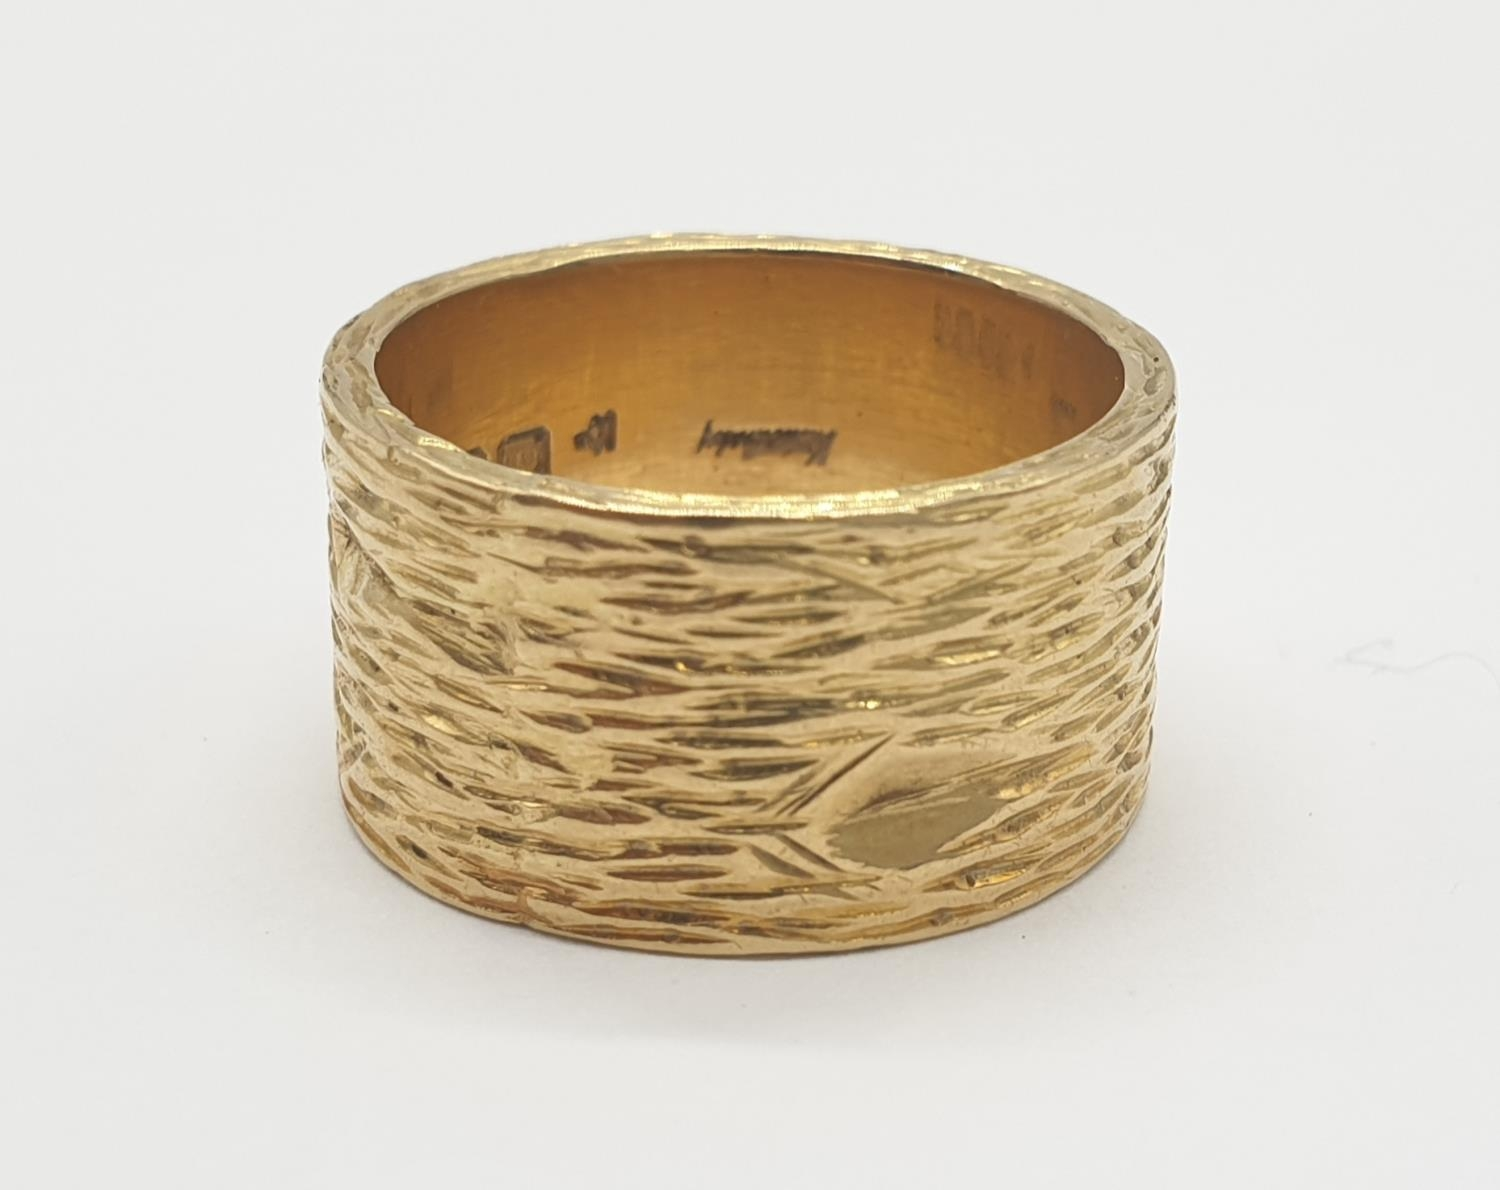 18ct gold wide band ring with grained pattern, weight 14.4g and size O - Image 2 of 4